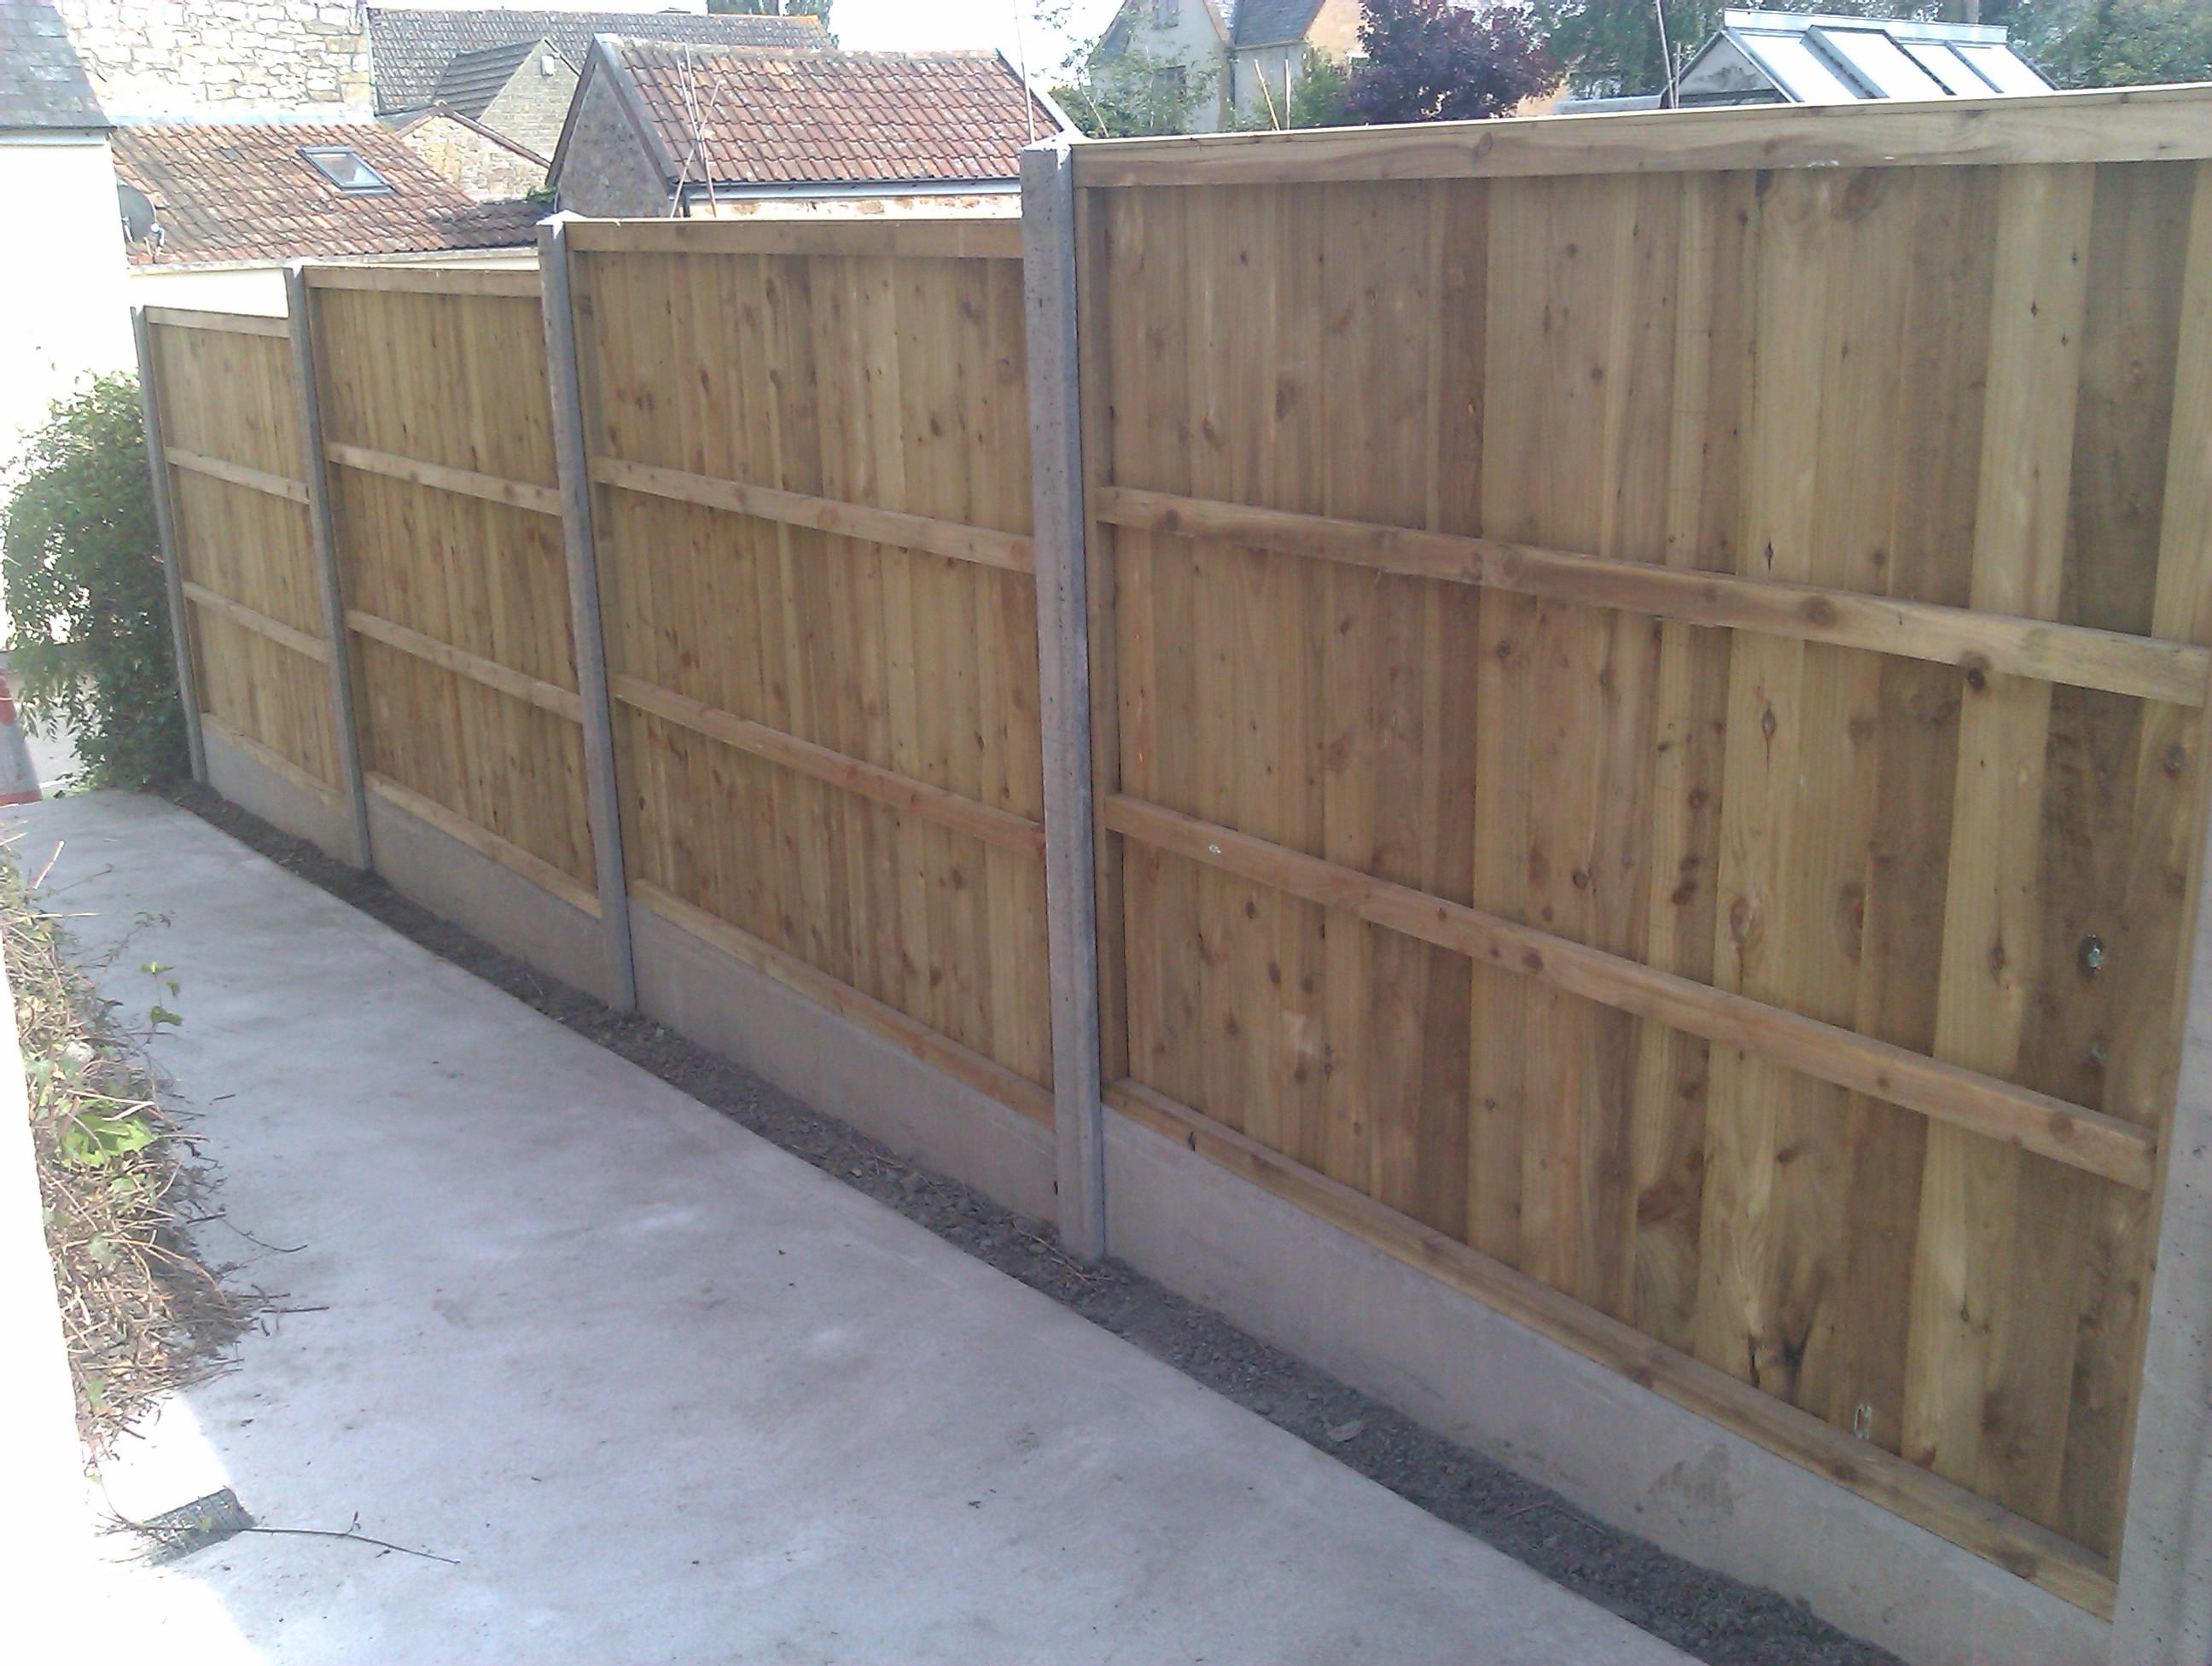 April 2013 andy smith fencing specialist close board panel fencing with concrete slotted posts and concrete gravel boards baanklon Gallery